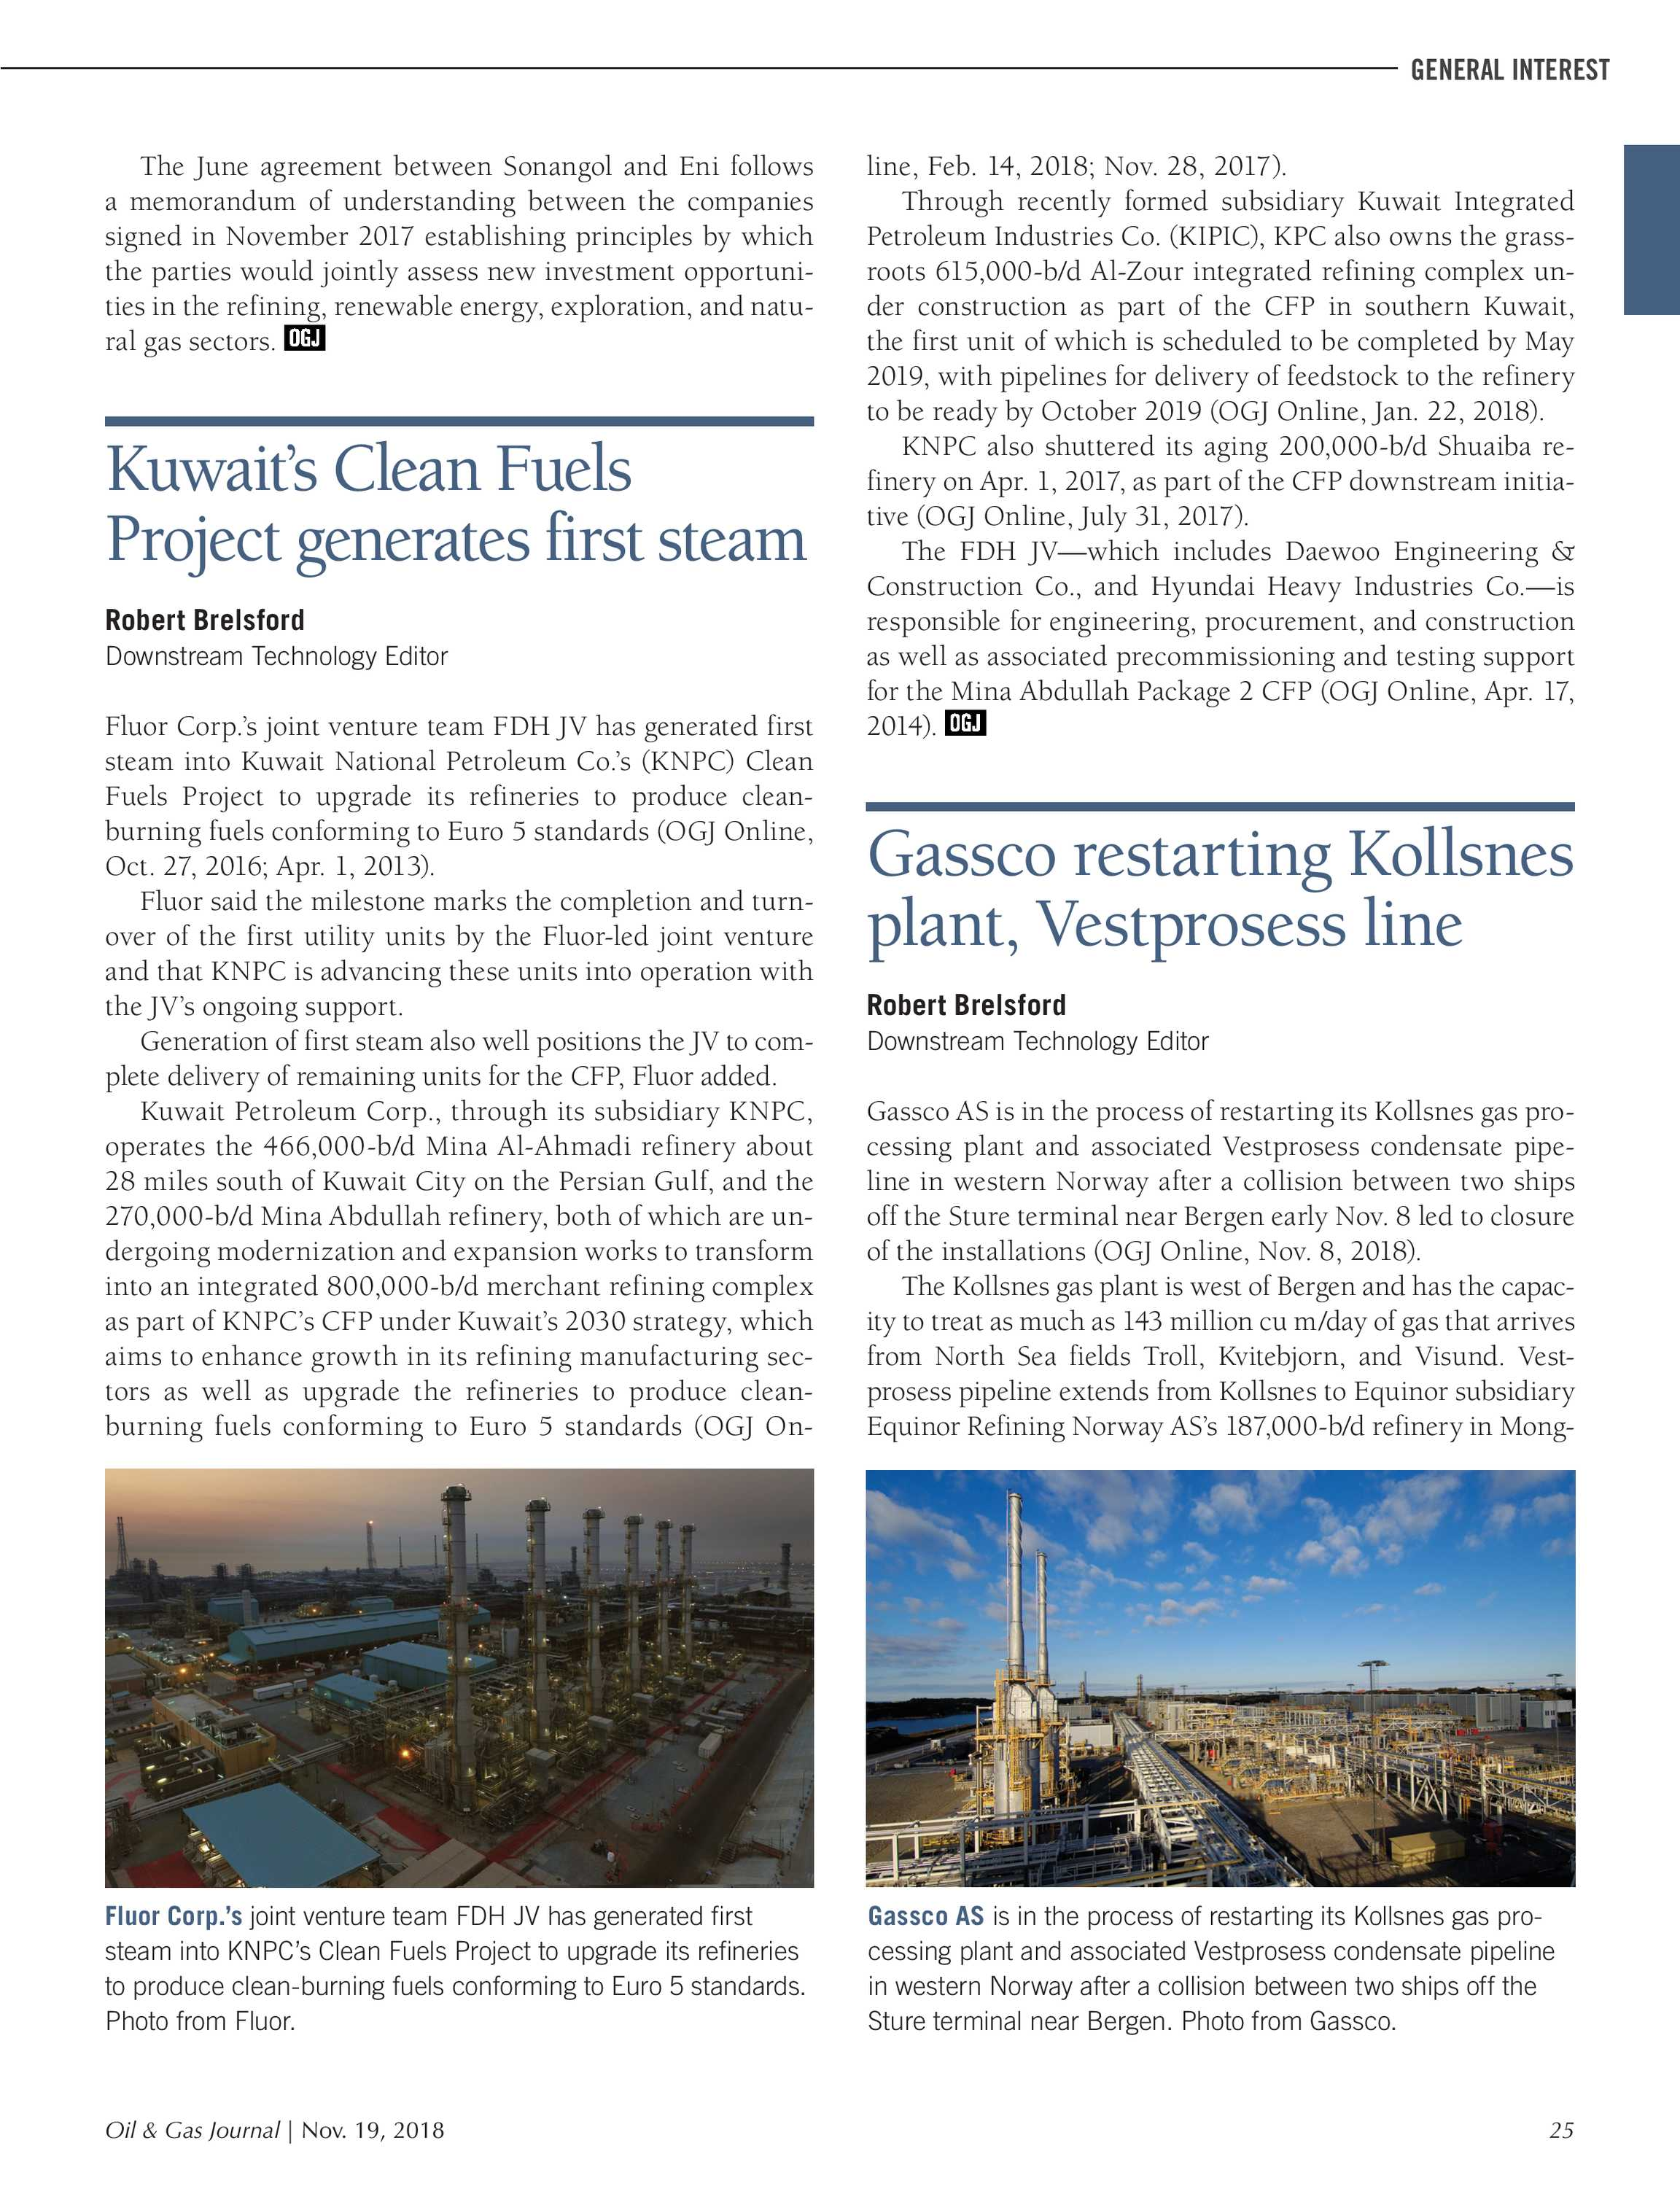 Oil & Gas Journal - November 19, 2018 - page 25